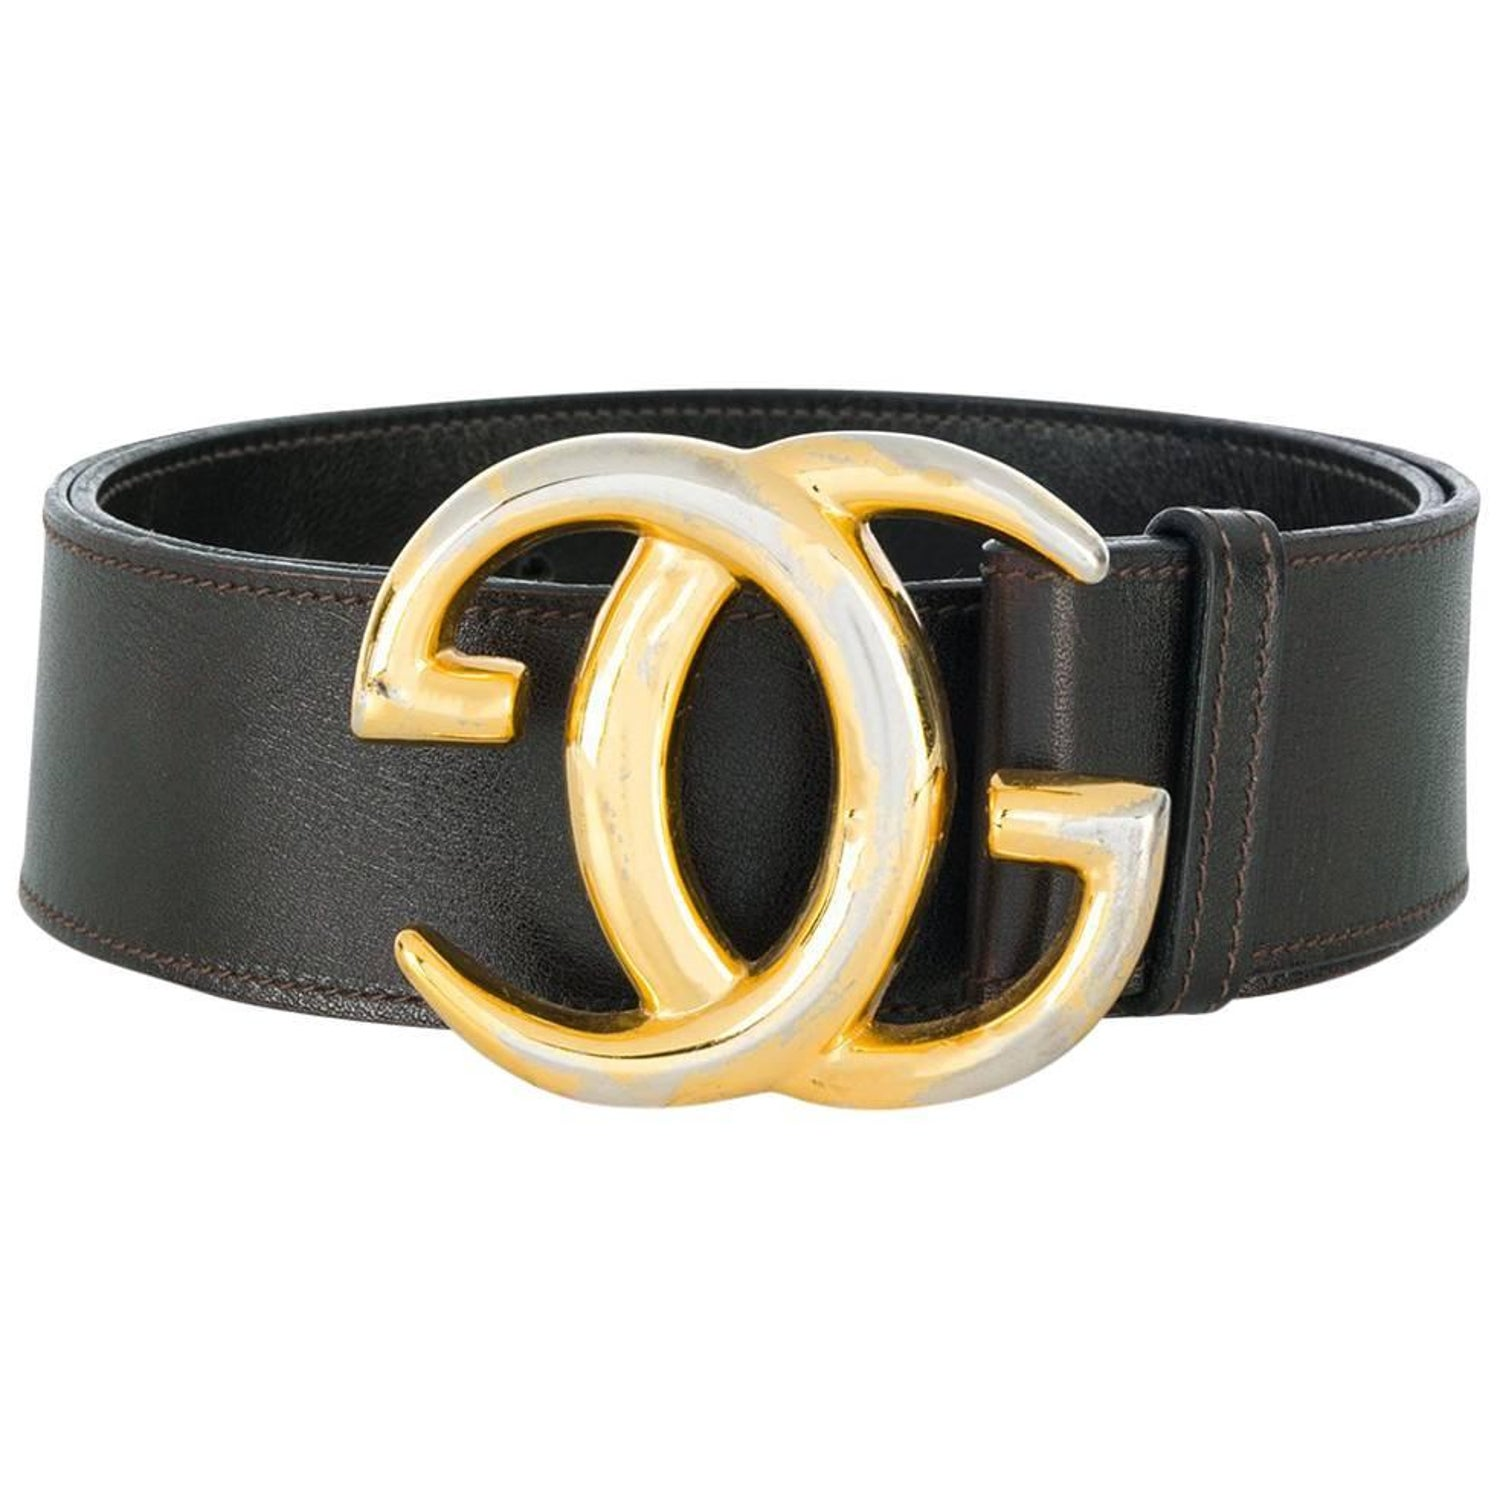 a3cd73fbef9 Gucci Interlocking GG Brown Leather Belt at 1stdibs